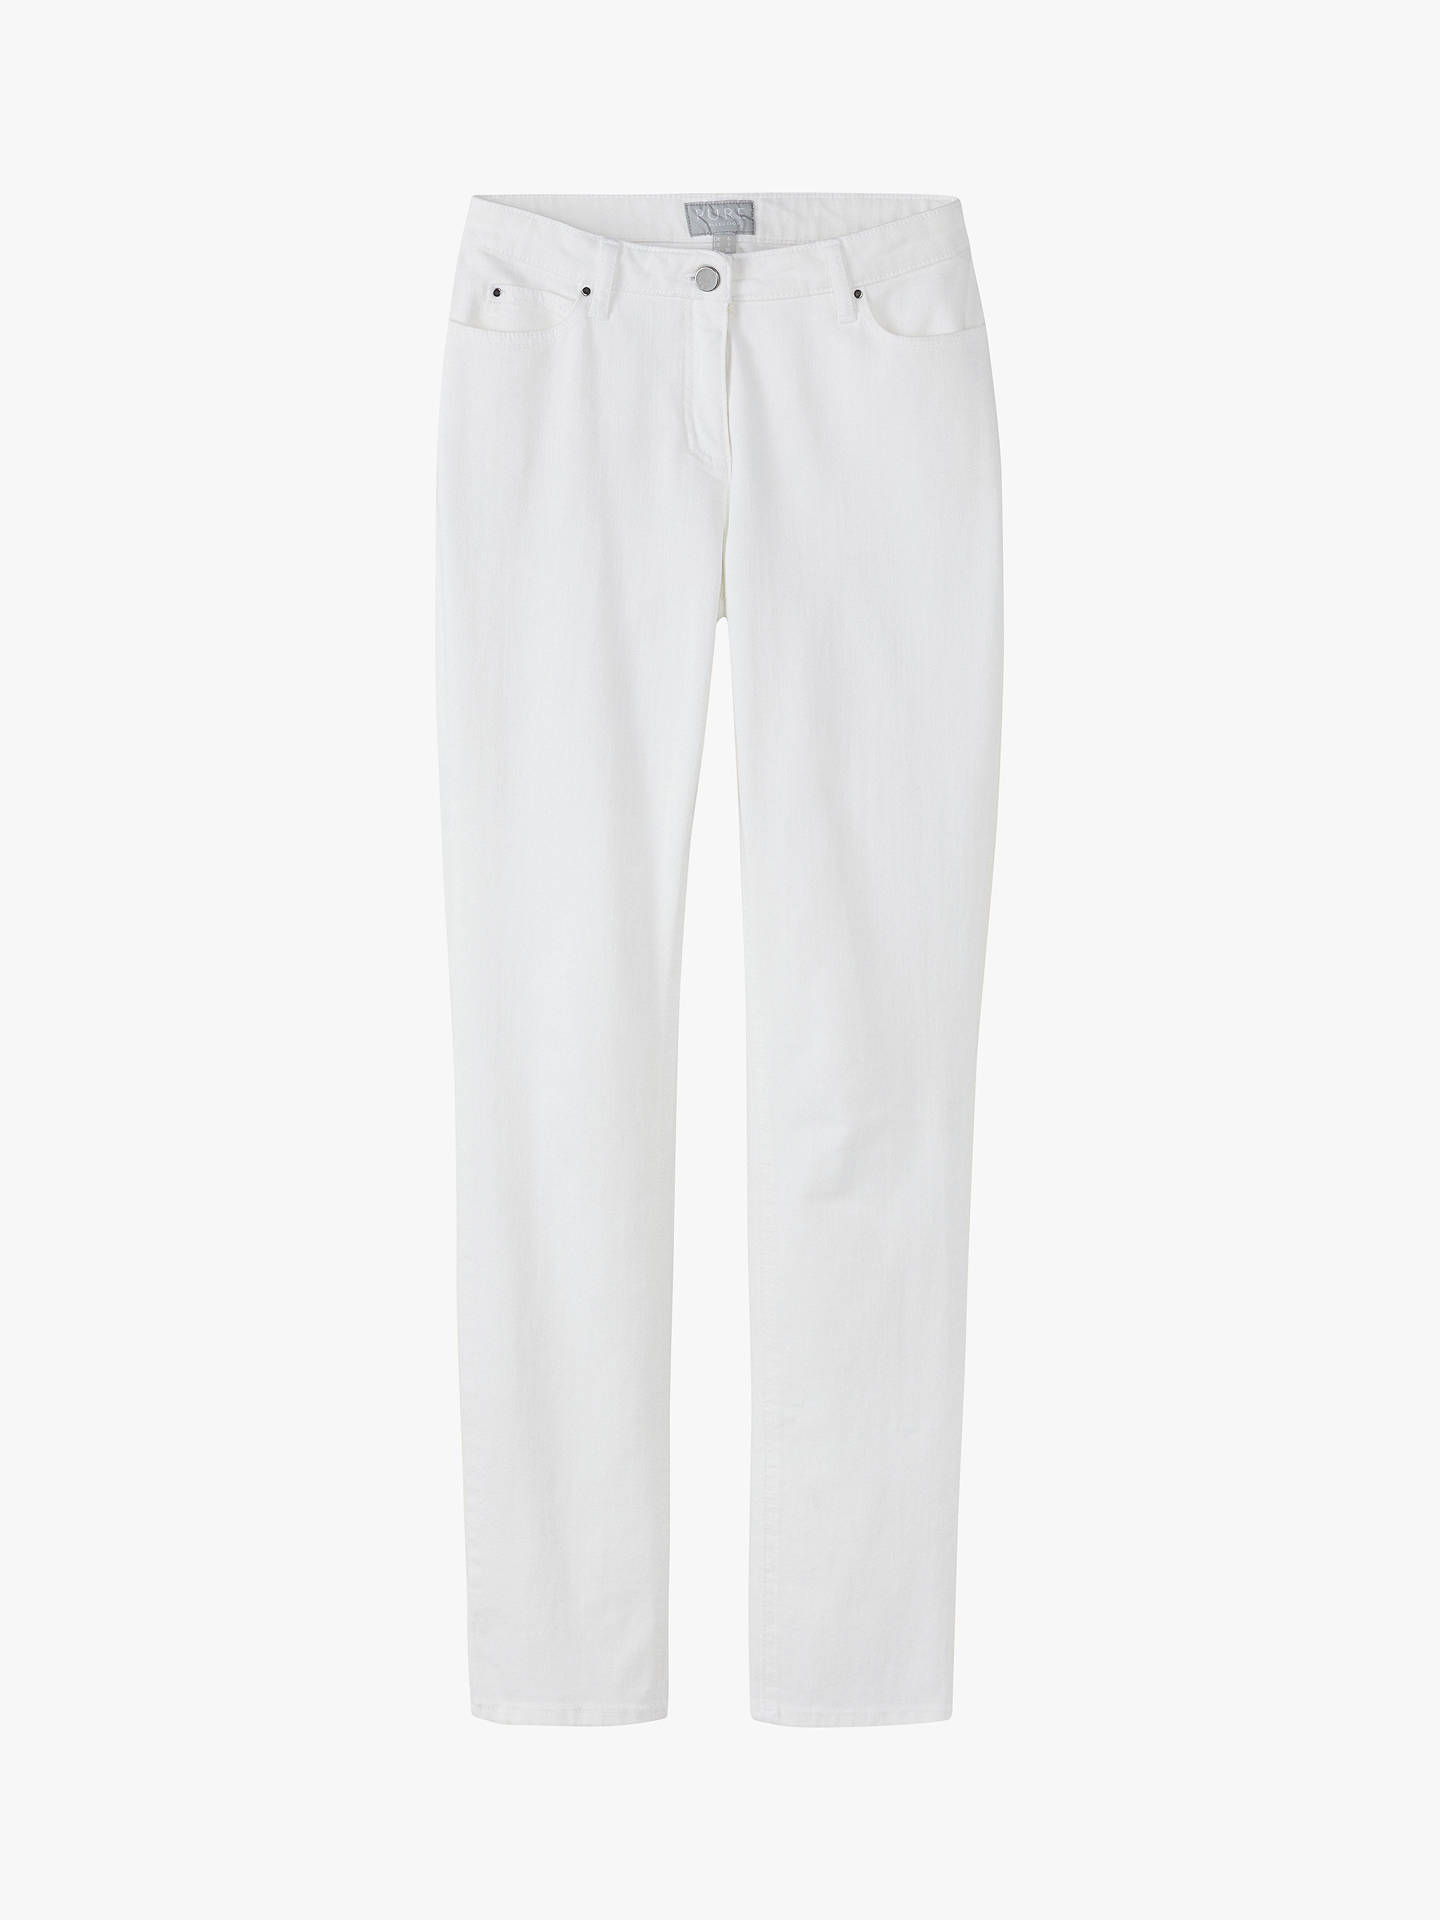 Buy Pure Collection Slim Leg Jeans, White, 8S Online at johnlewis.com